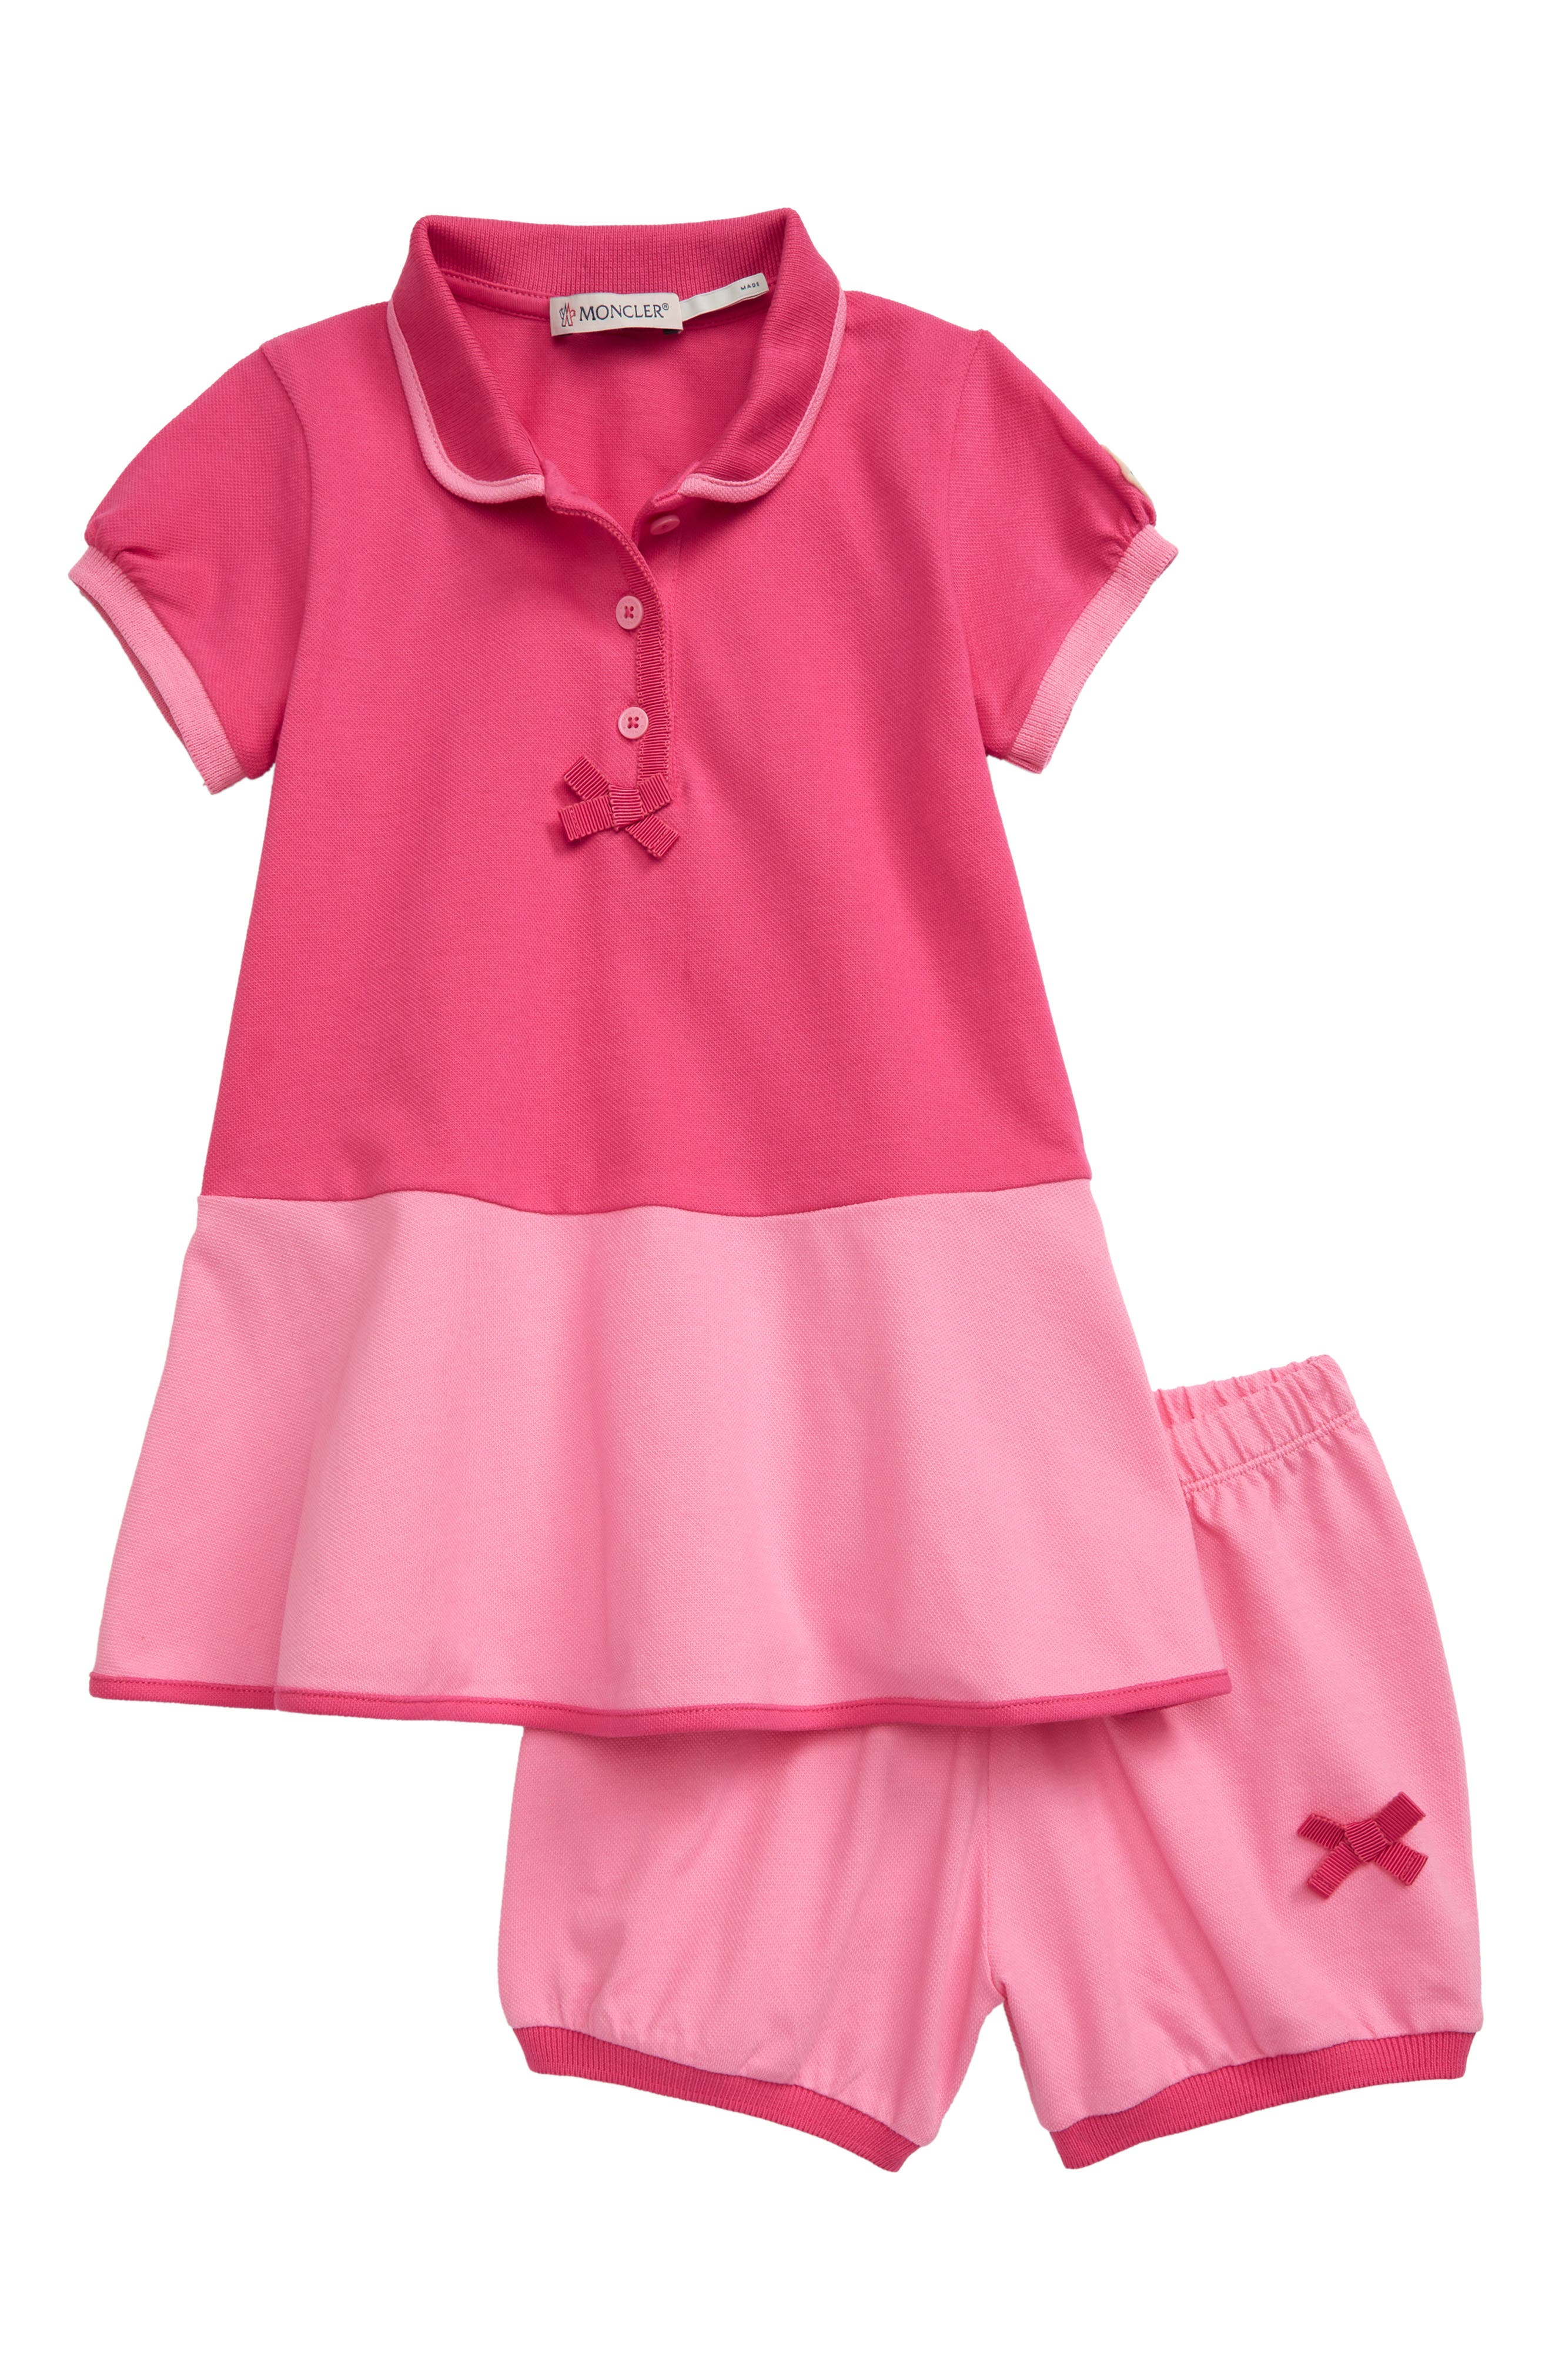 Grosgrain bows and trim-Moncler signatures-sweeten this cotton pique polo dress paired with coordinated bloomers. Style Name: Moncler Pique Polo Dress (Toddler). Style Number: 6000305. Available in stores.